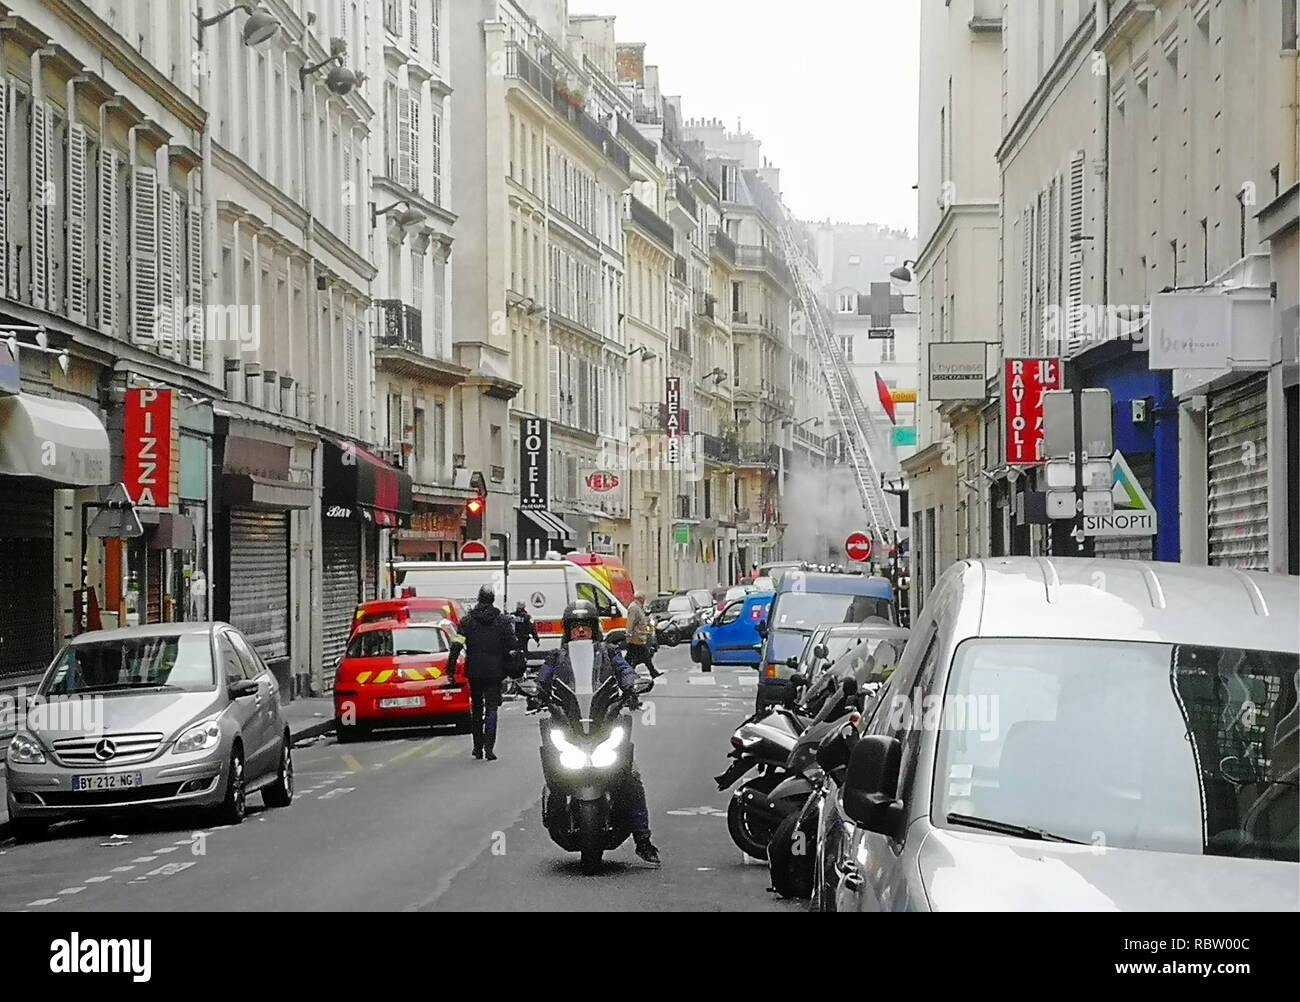 Paris, France. 12th Jan, 2019. PARIS, FRANCE - JANUARY 12, 2019: Emergency services at the scene of a gas explosion in a bakery at the Rue de Trevise Street in the 9th Arrondissement of Paris; fire fighters had arrived at the Rue de Trevise Street before the explosion, in response to a gas odour call; several fire fighters have been injured in the blast, according to French mass media reports. Dmitry Orlov/TASS Credit: ITAR-TASS News Agency/Alamy Live News Stock Photo